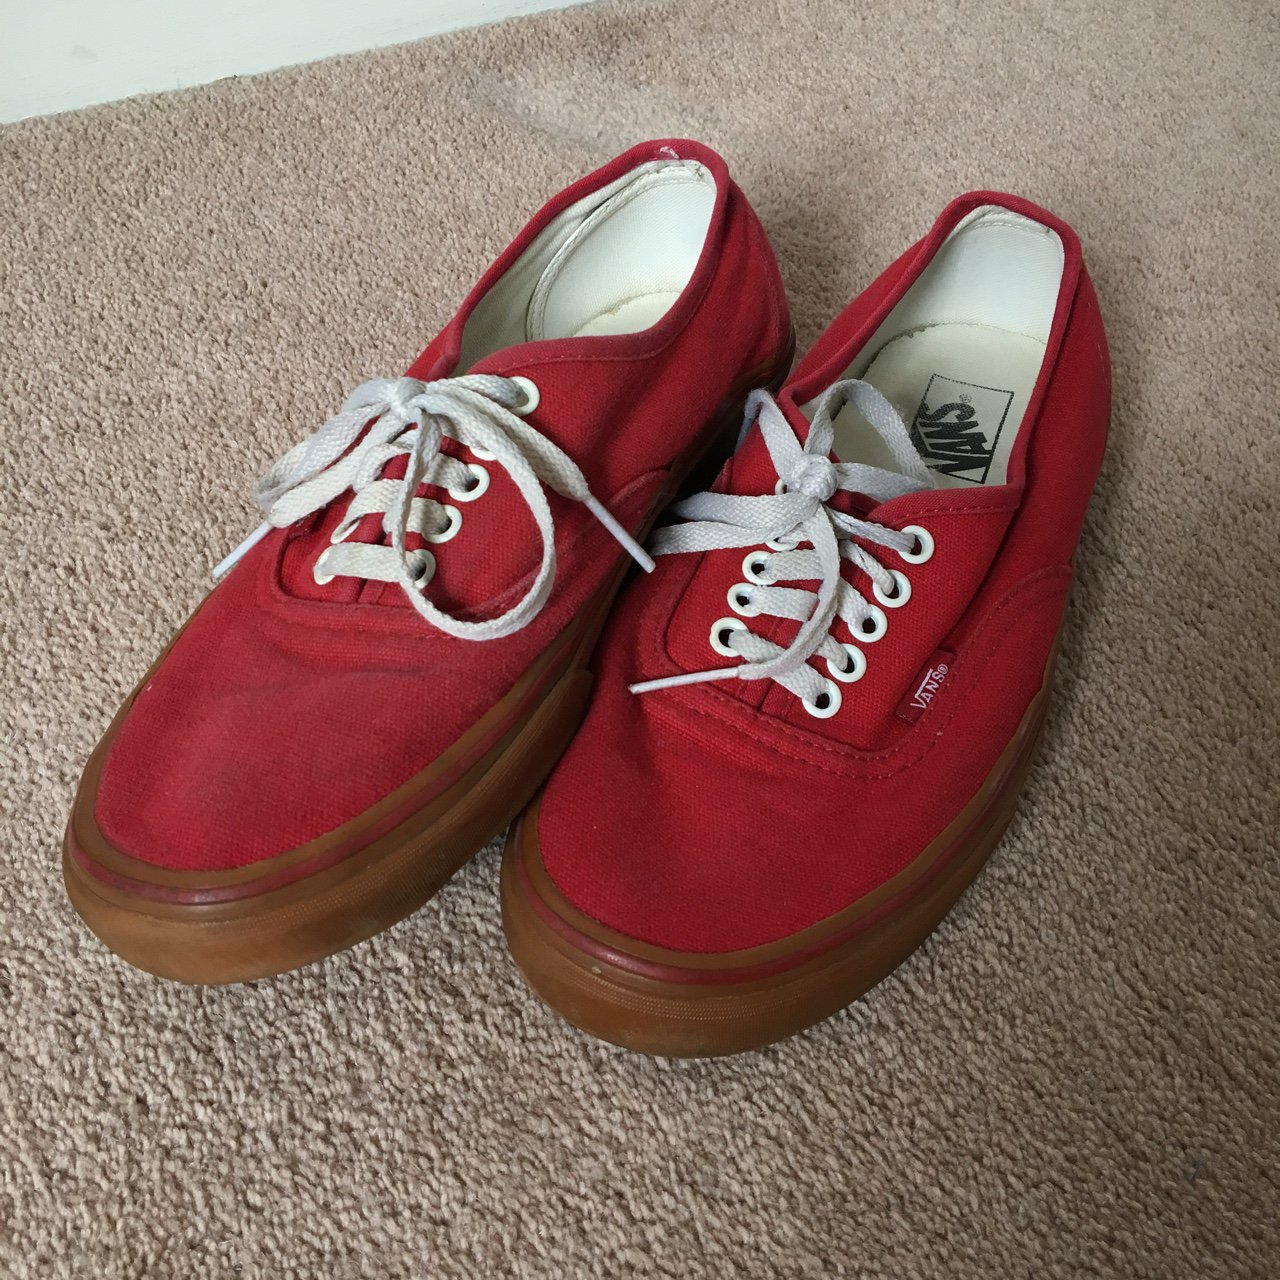 Vans Authentic Red + Gum. Slightly worn but good condition - Depop 3785ee9a2b5b